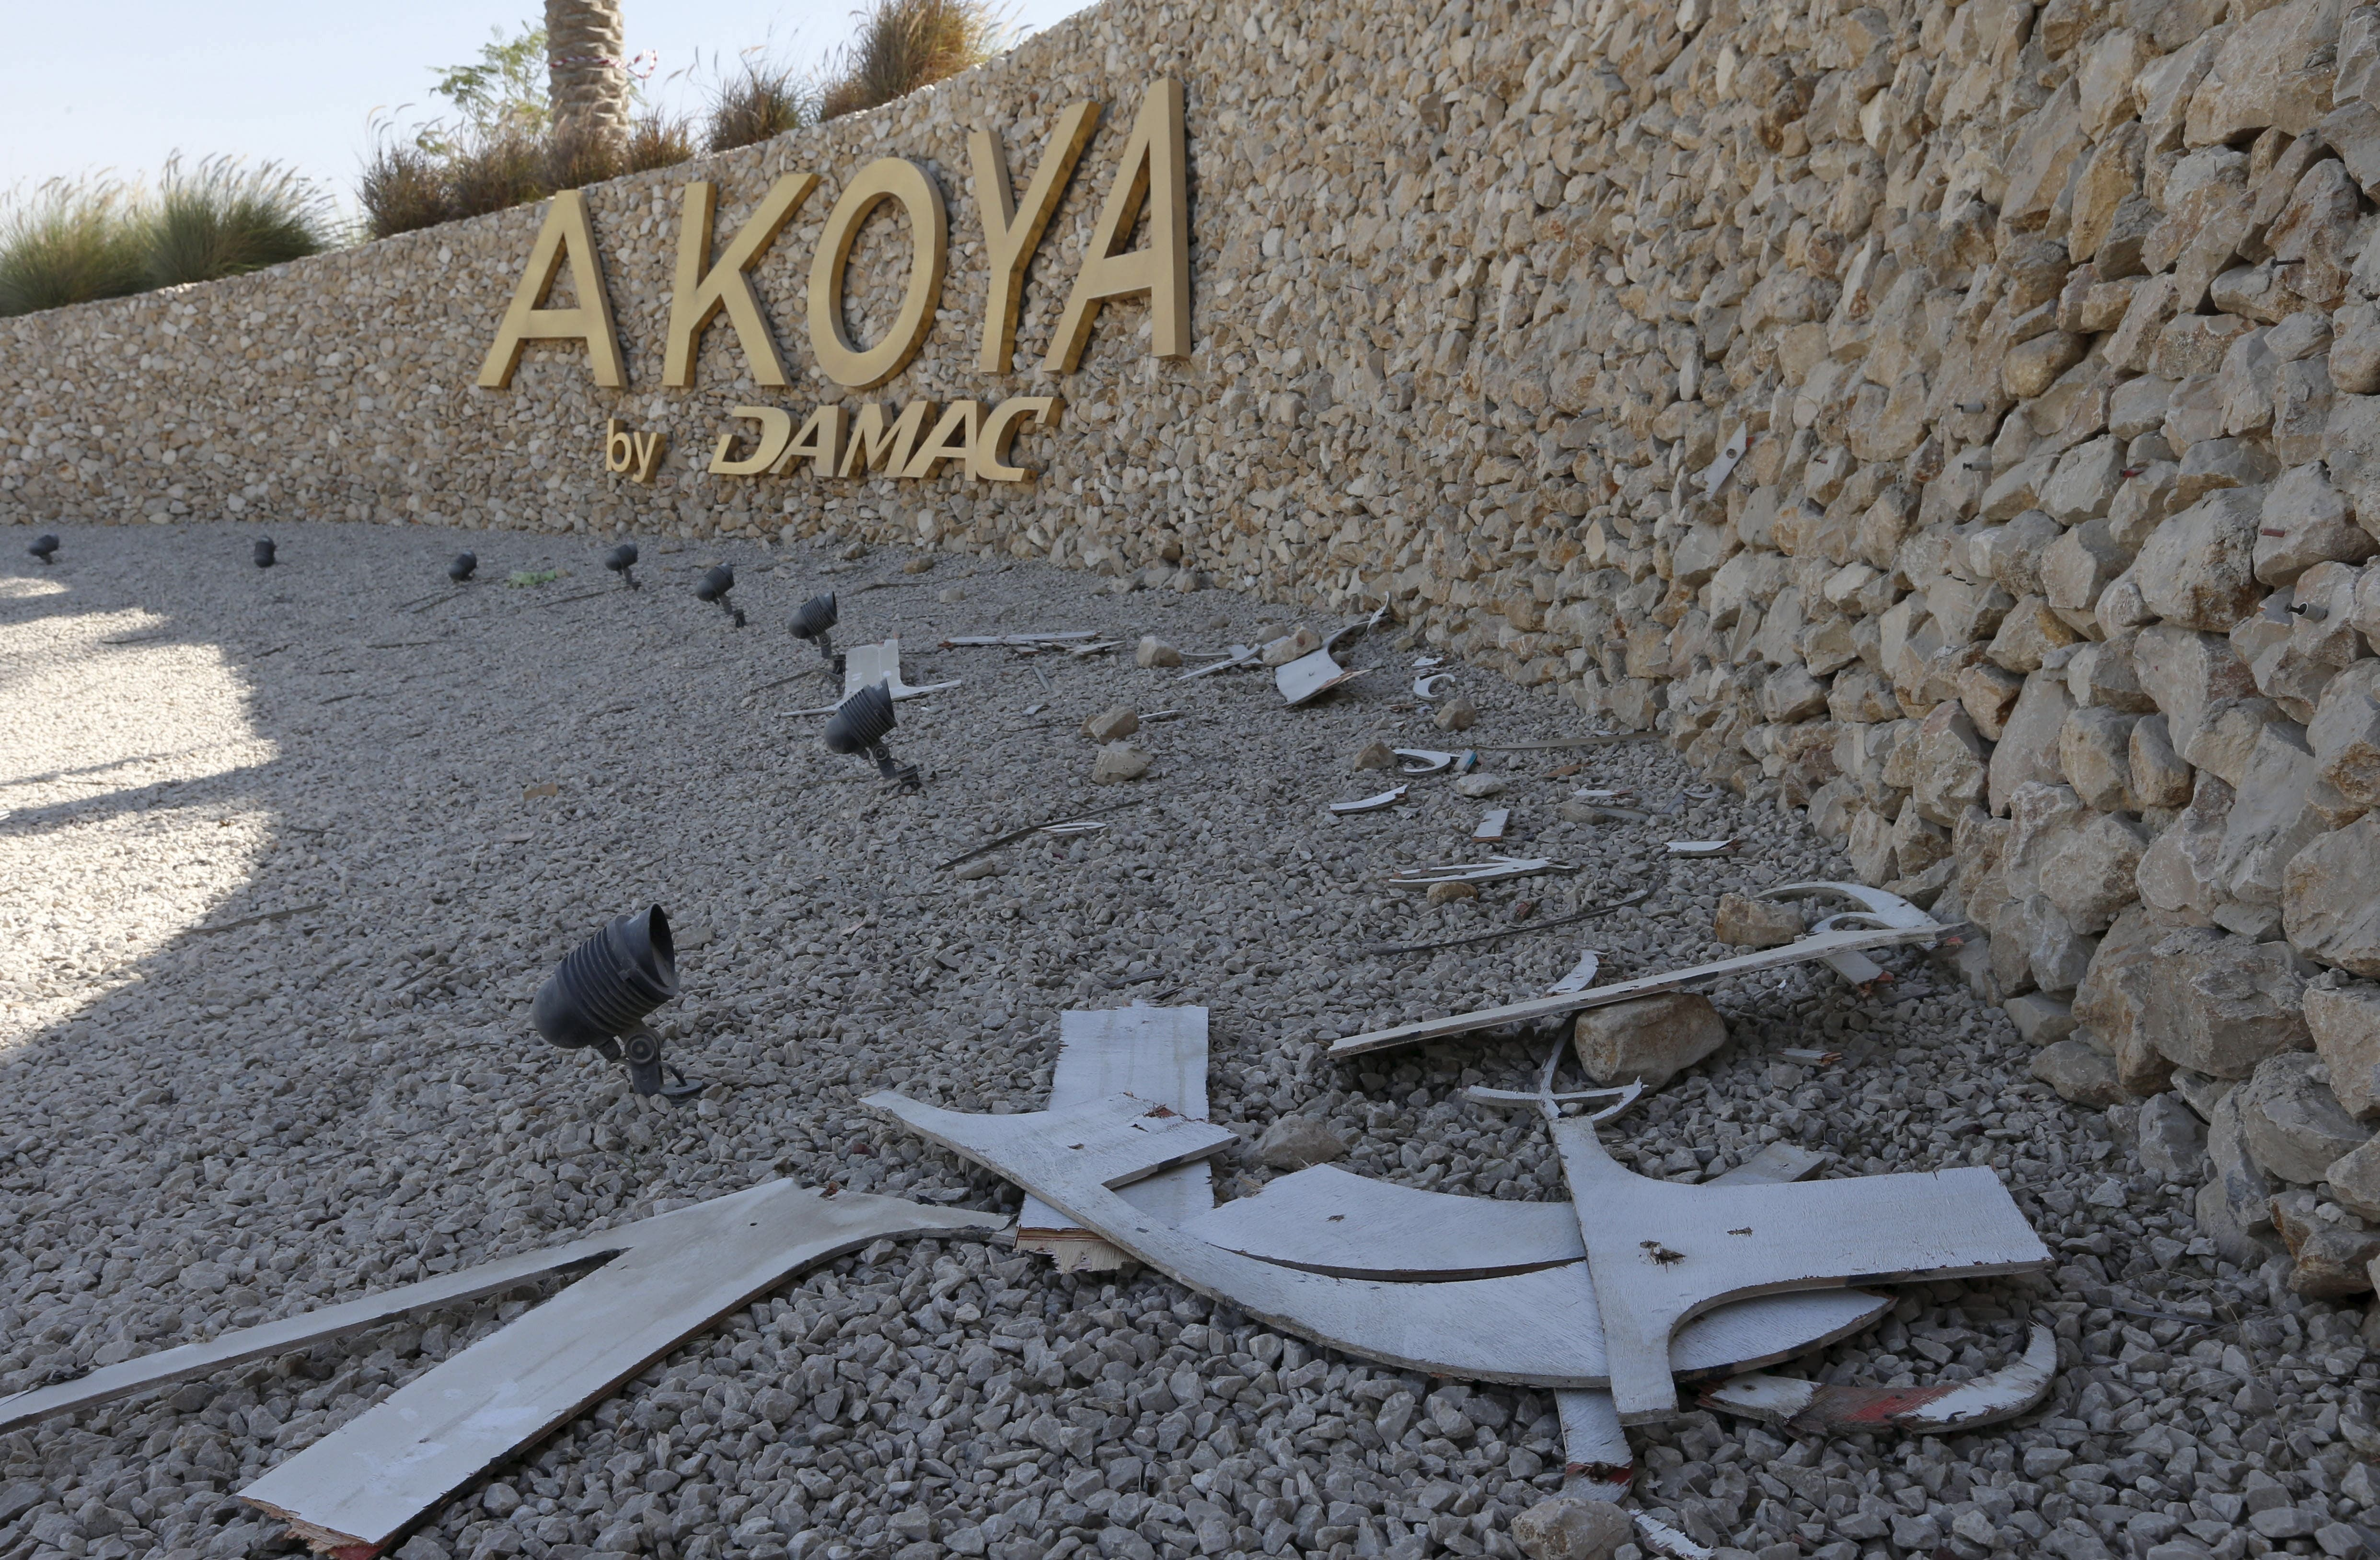 A view shows the signboard after the removal of the Trump International Golf Club portion at the AKOYA by DAMAC development in Dubai December 10, 2015. (Reuters)